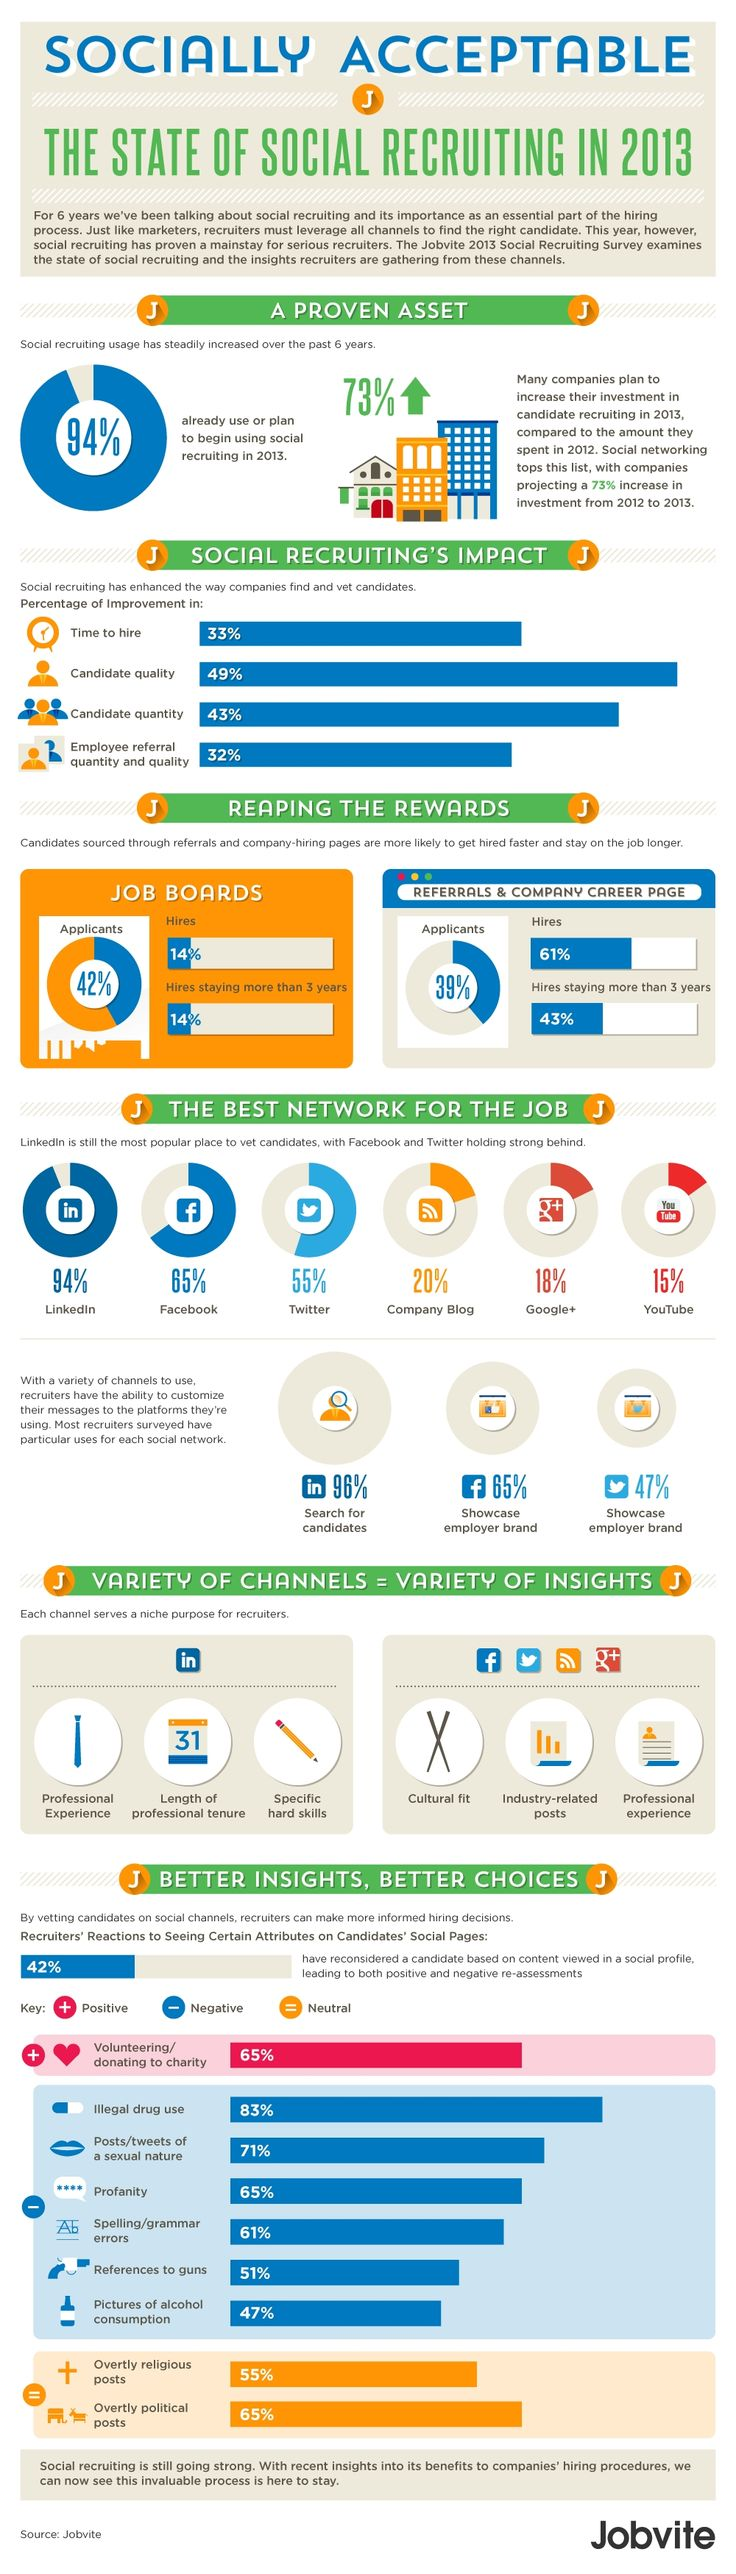 Social Recruiting In 2013: Attracting Potential Employees Through Social Media